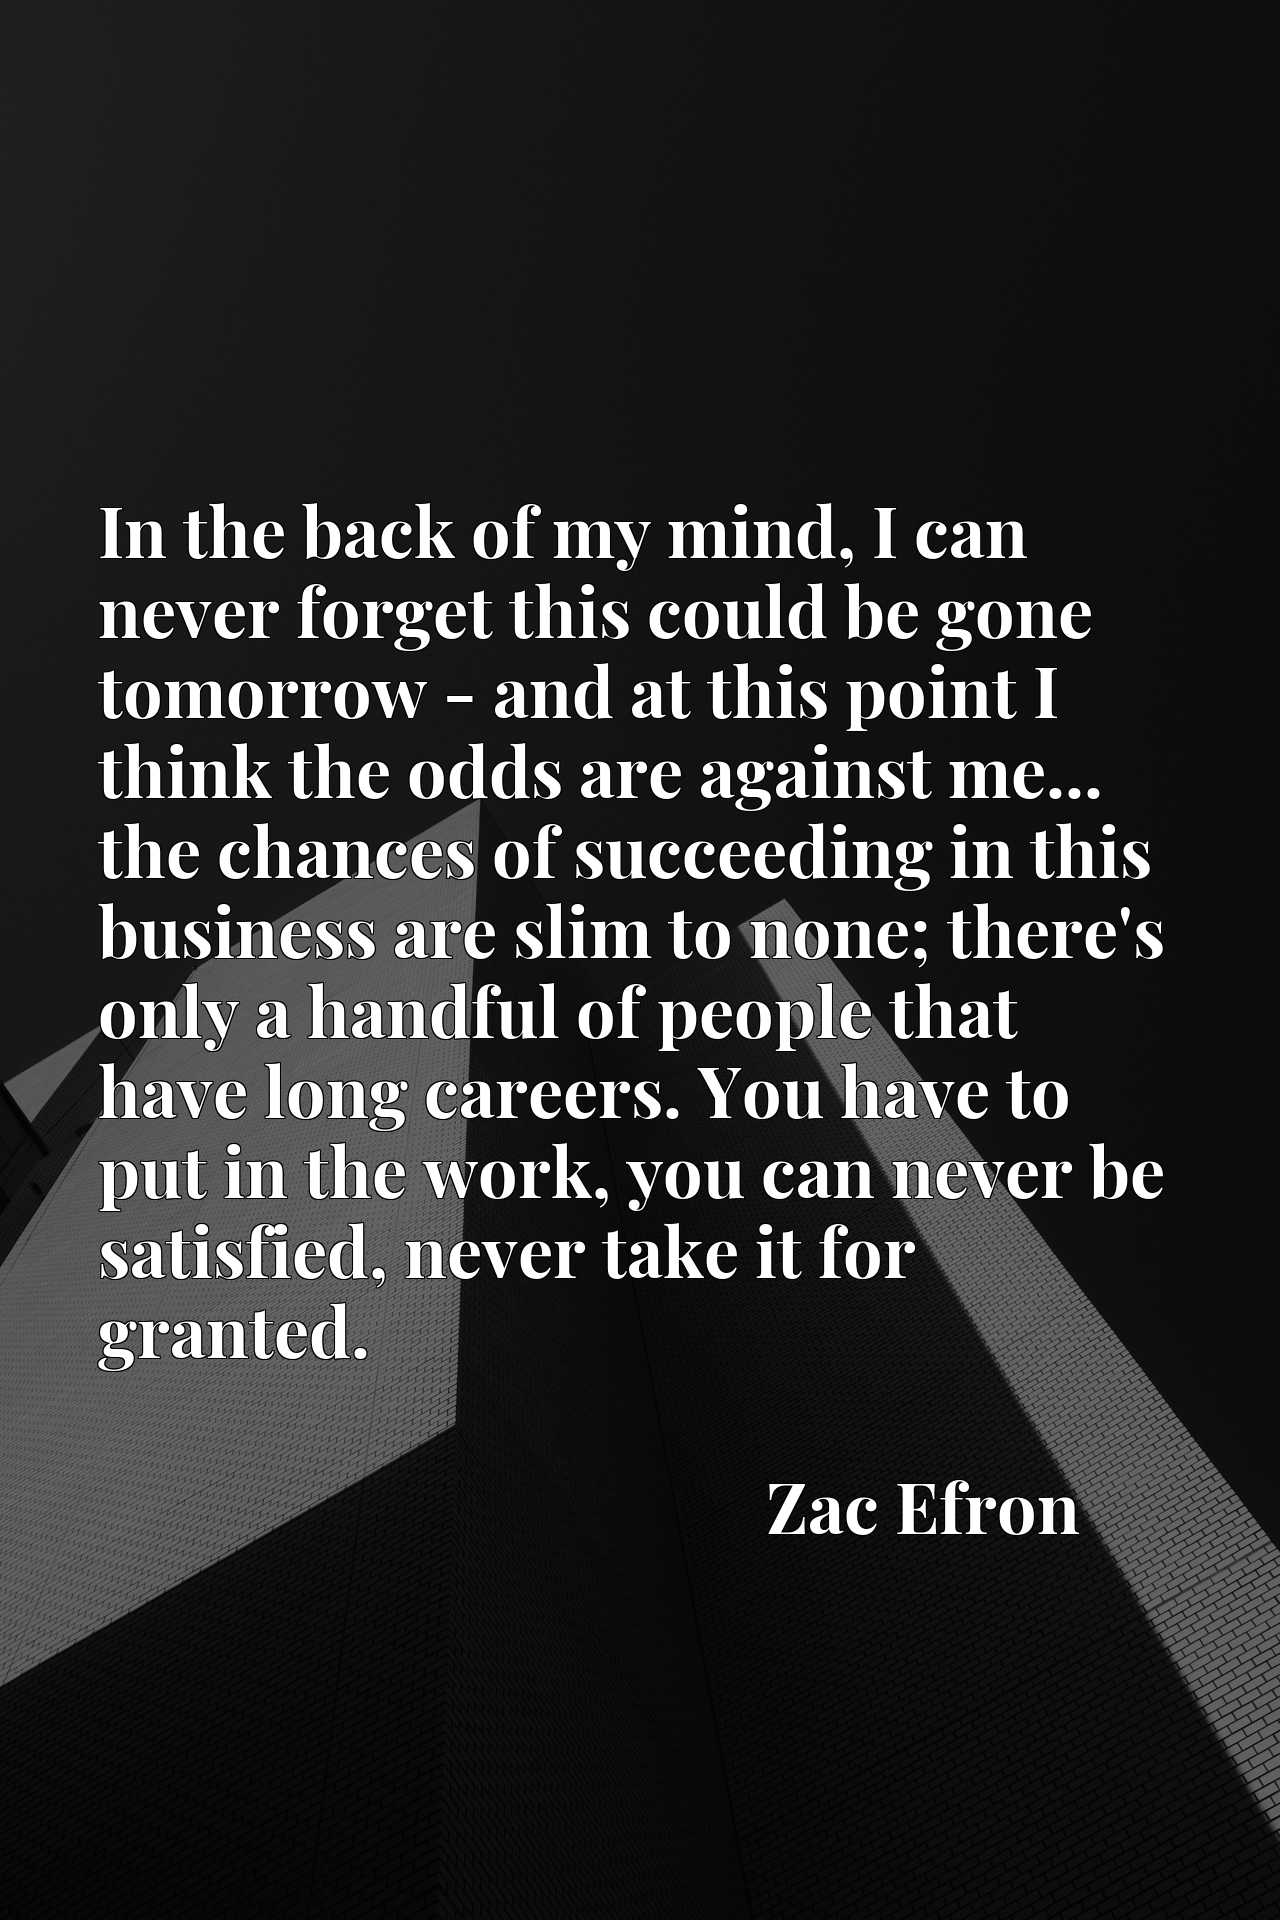 In the back of my mind, I can never forget this could be gone tomorrow - and at this point I think the odds are against me... the chances of succeeding in this business are slim to none; there's only a handful of people that have long careers. You have to put in the work, you can never be satisfied, never take it for granted.